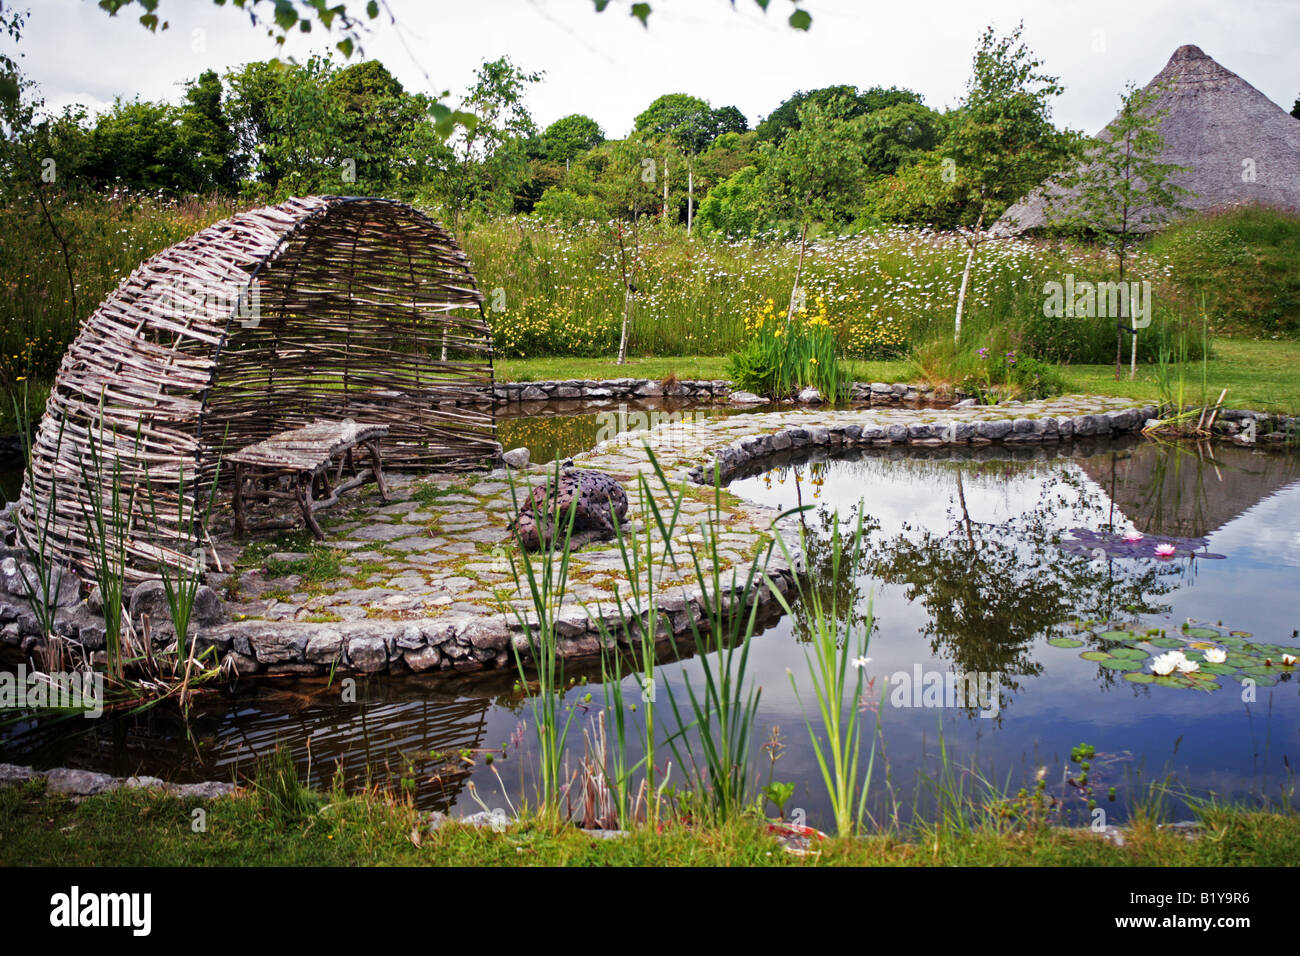 Samhain garden in brigit s garden country park designed by for Garden design galway